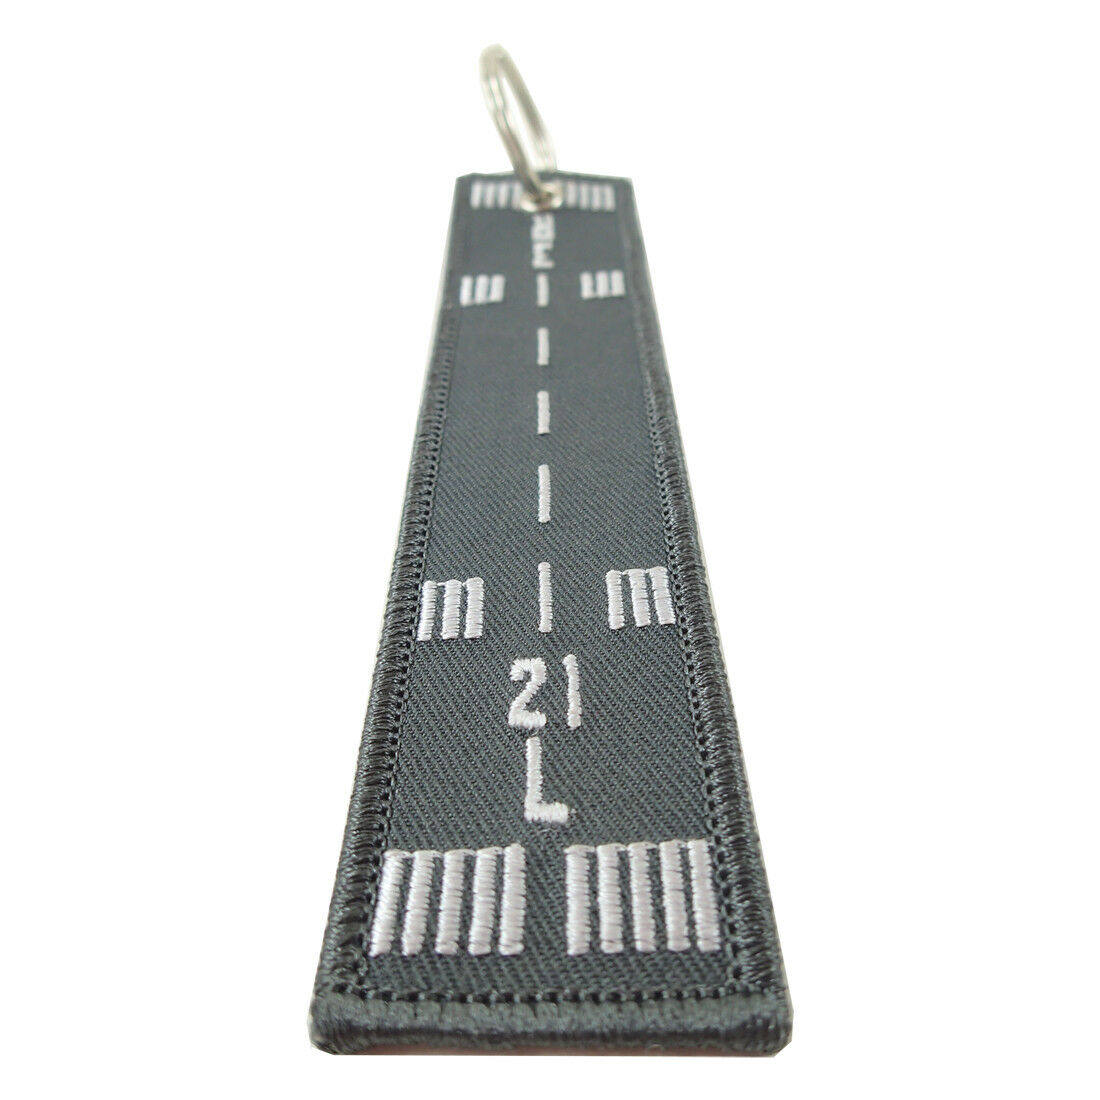 Luso Aviation Runway 21L-3R Embroidered Key Chain